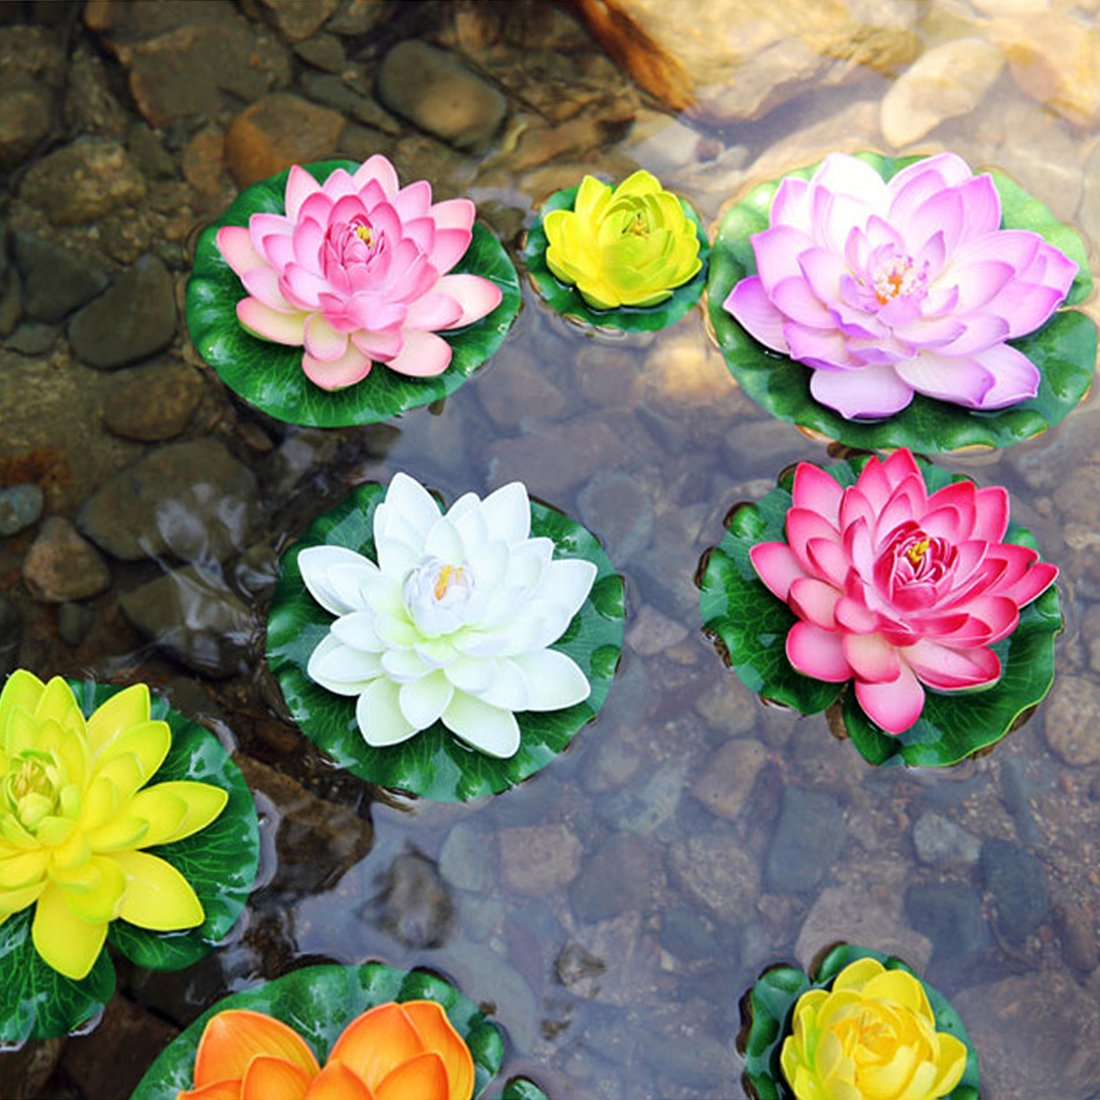 LSHCX Artificial Floating Lotus Flower for Pond Decor 6 Pack of Water Lily